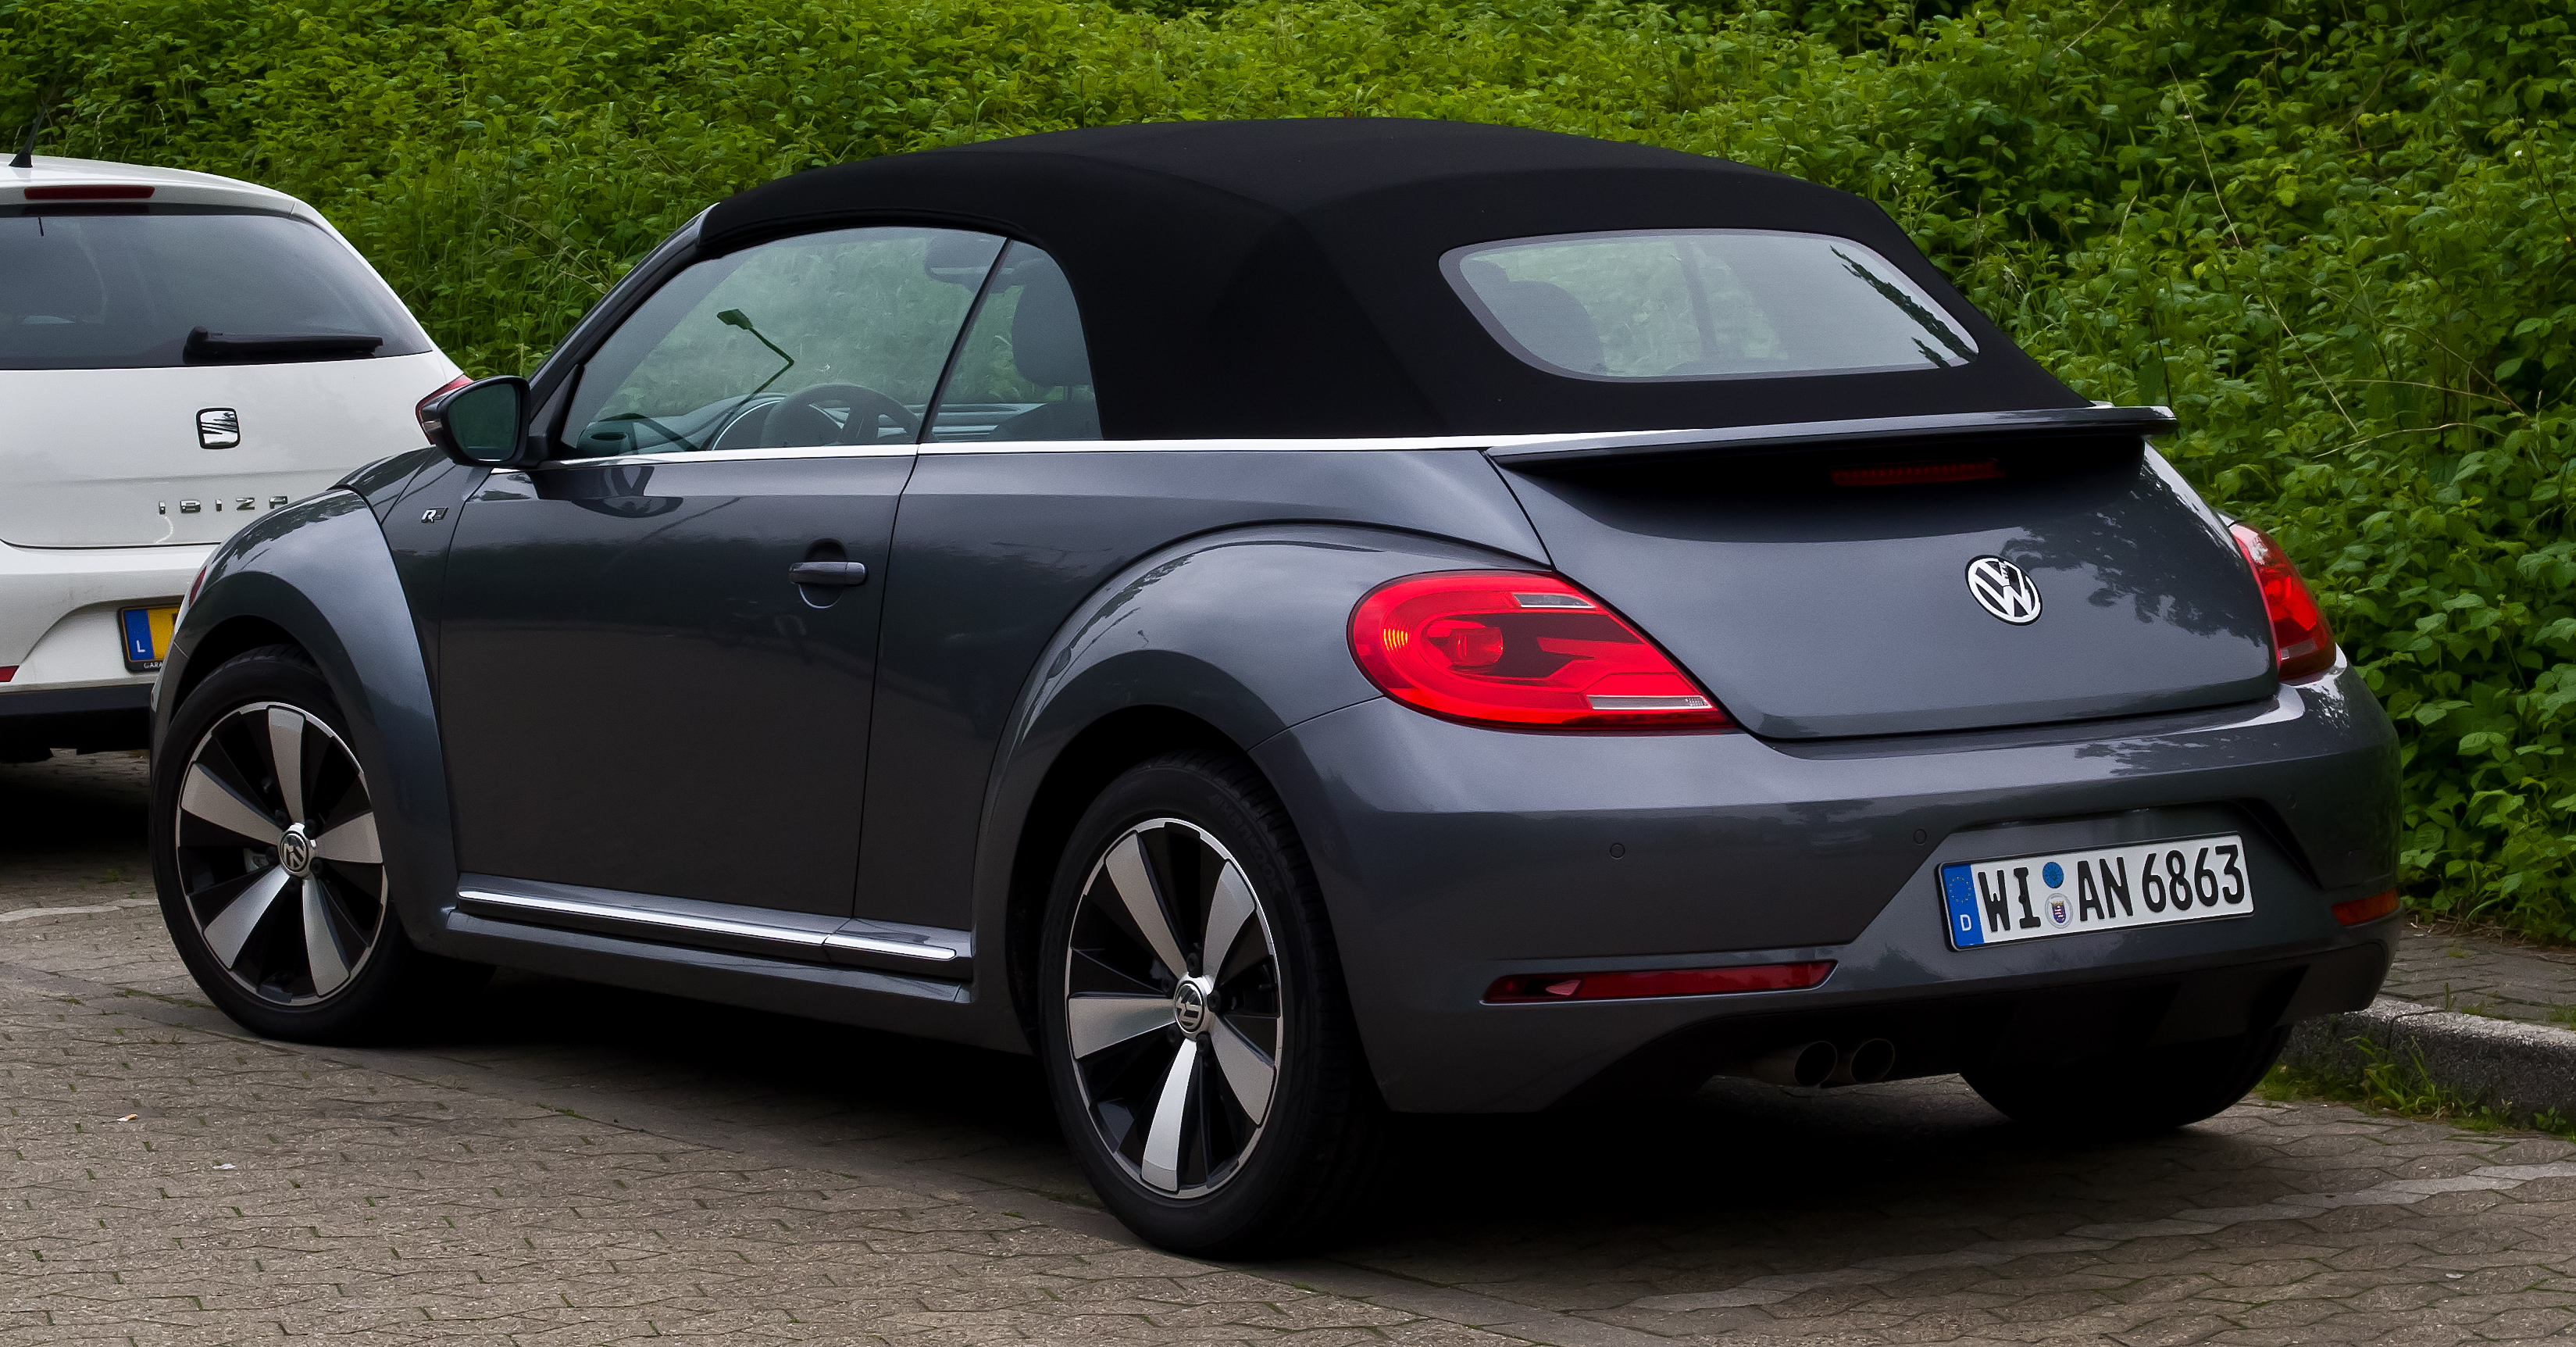 datei vw beetle cabriolet 1 4 tsi sport r line ii heckansicht 1 juni 2013. Black Bedroom Furniture Sets. Home Design Ideas